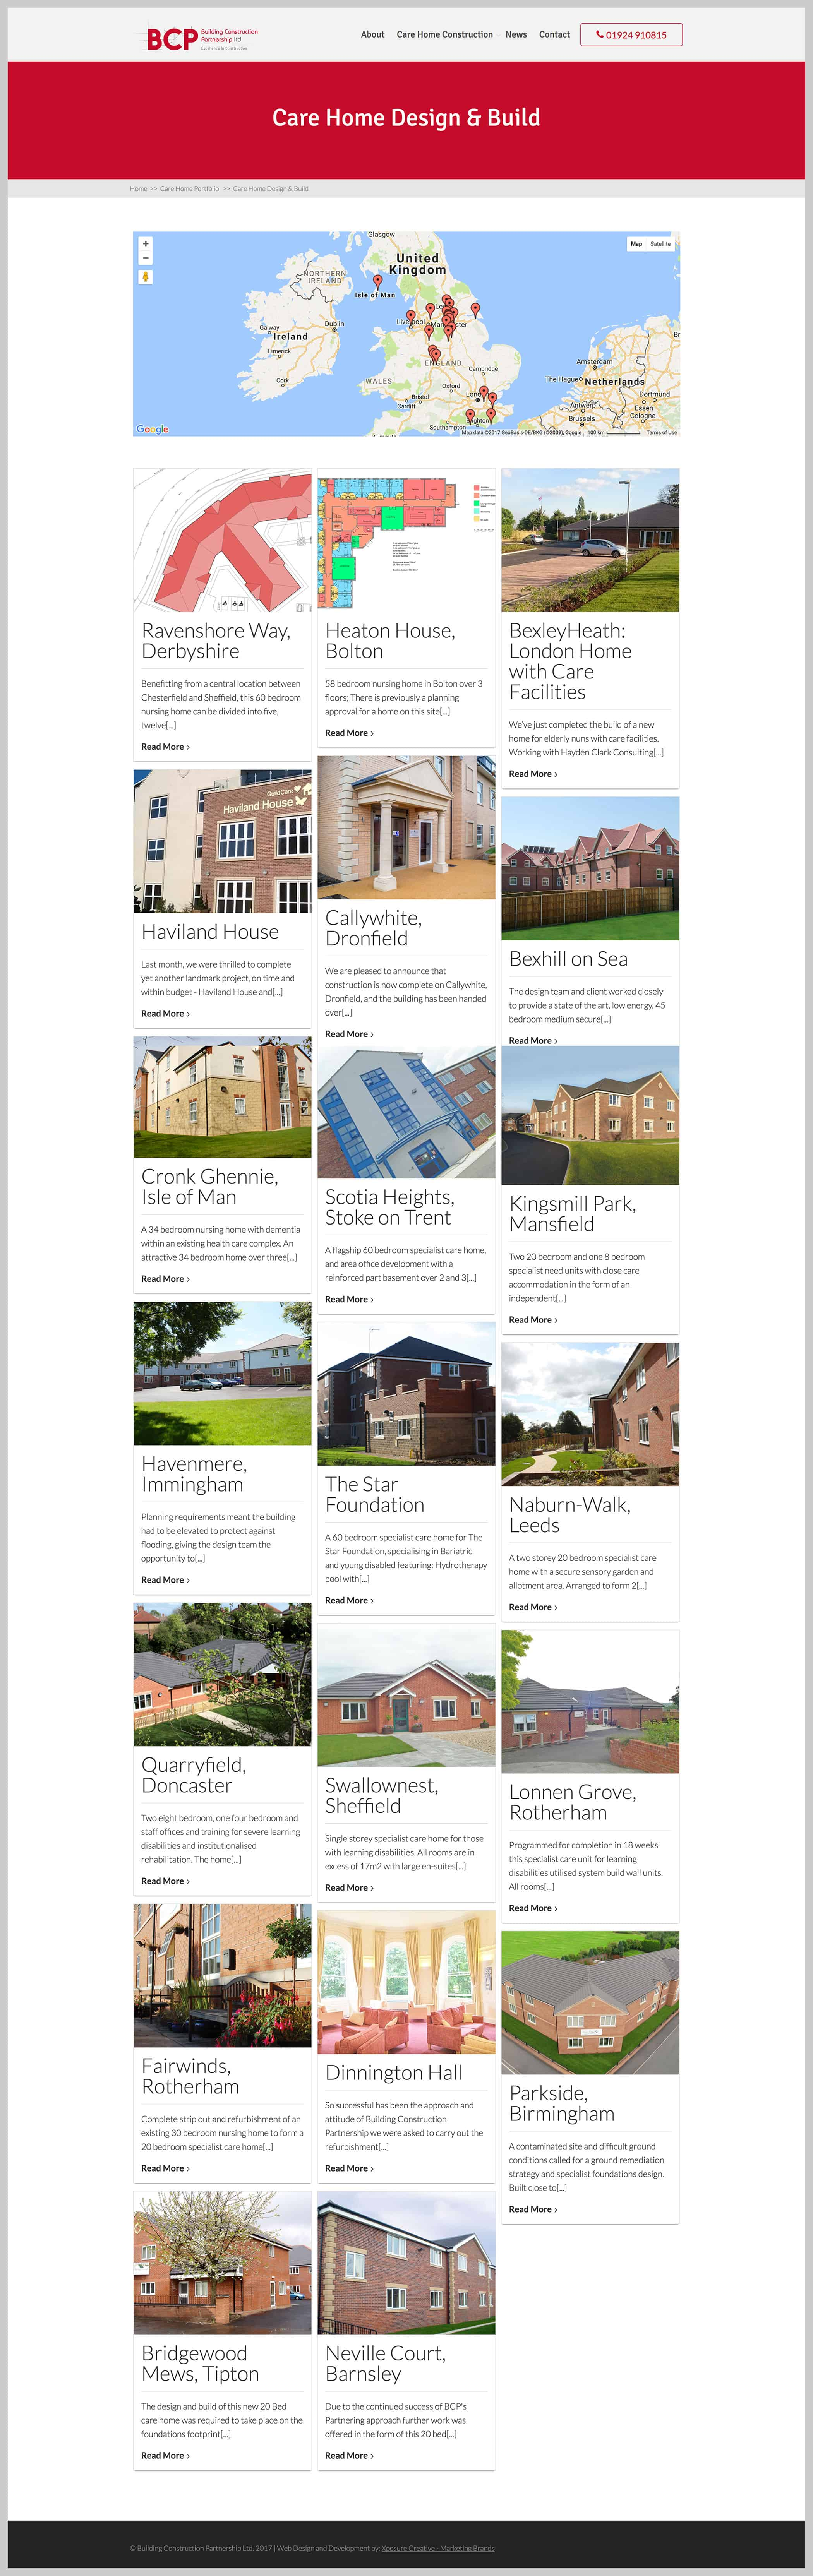 bcp portfolio website page for design and build